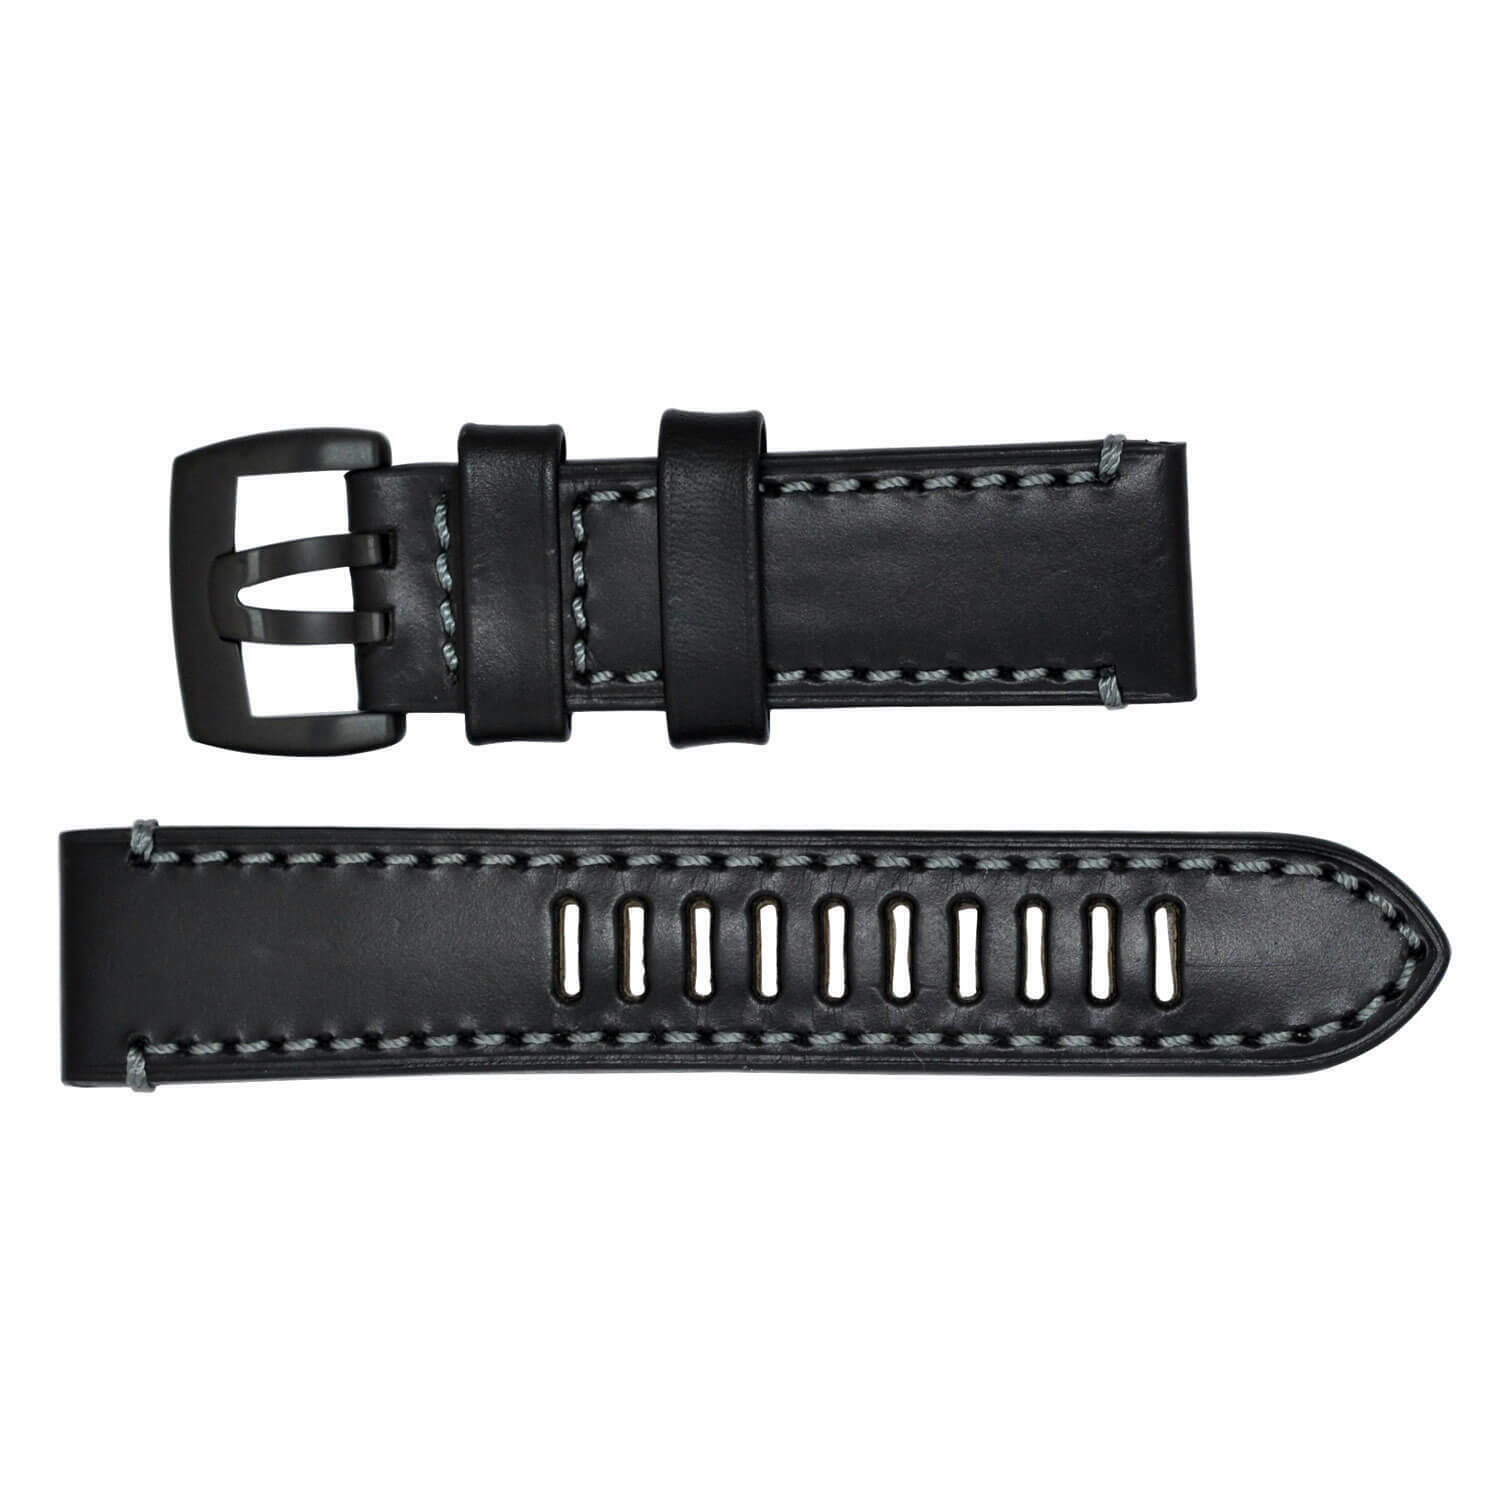 Luminox Watch Band Fied Series 1800 Black Leather Black Buckle Strap FE1800.20B